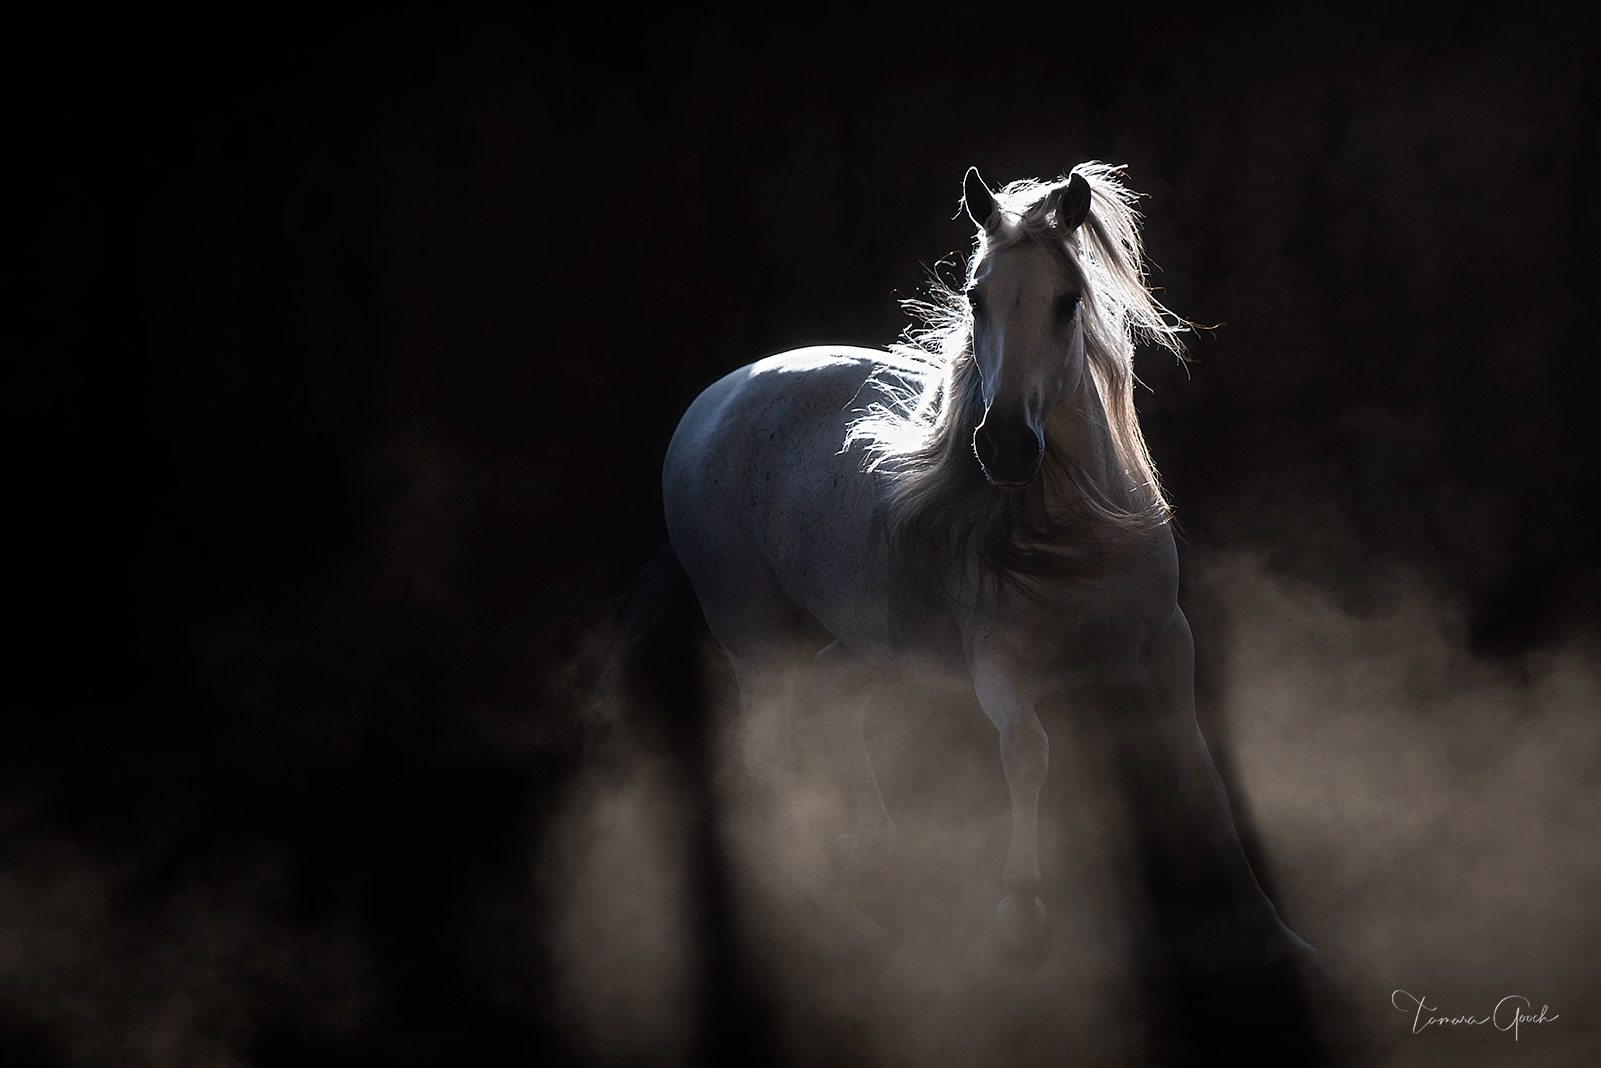 A limited edition luxury fine art print in black and white of a Andalusian horse photographed in low light surrounded by dust.